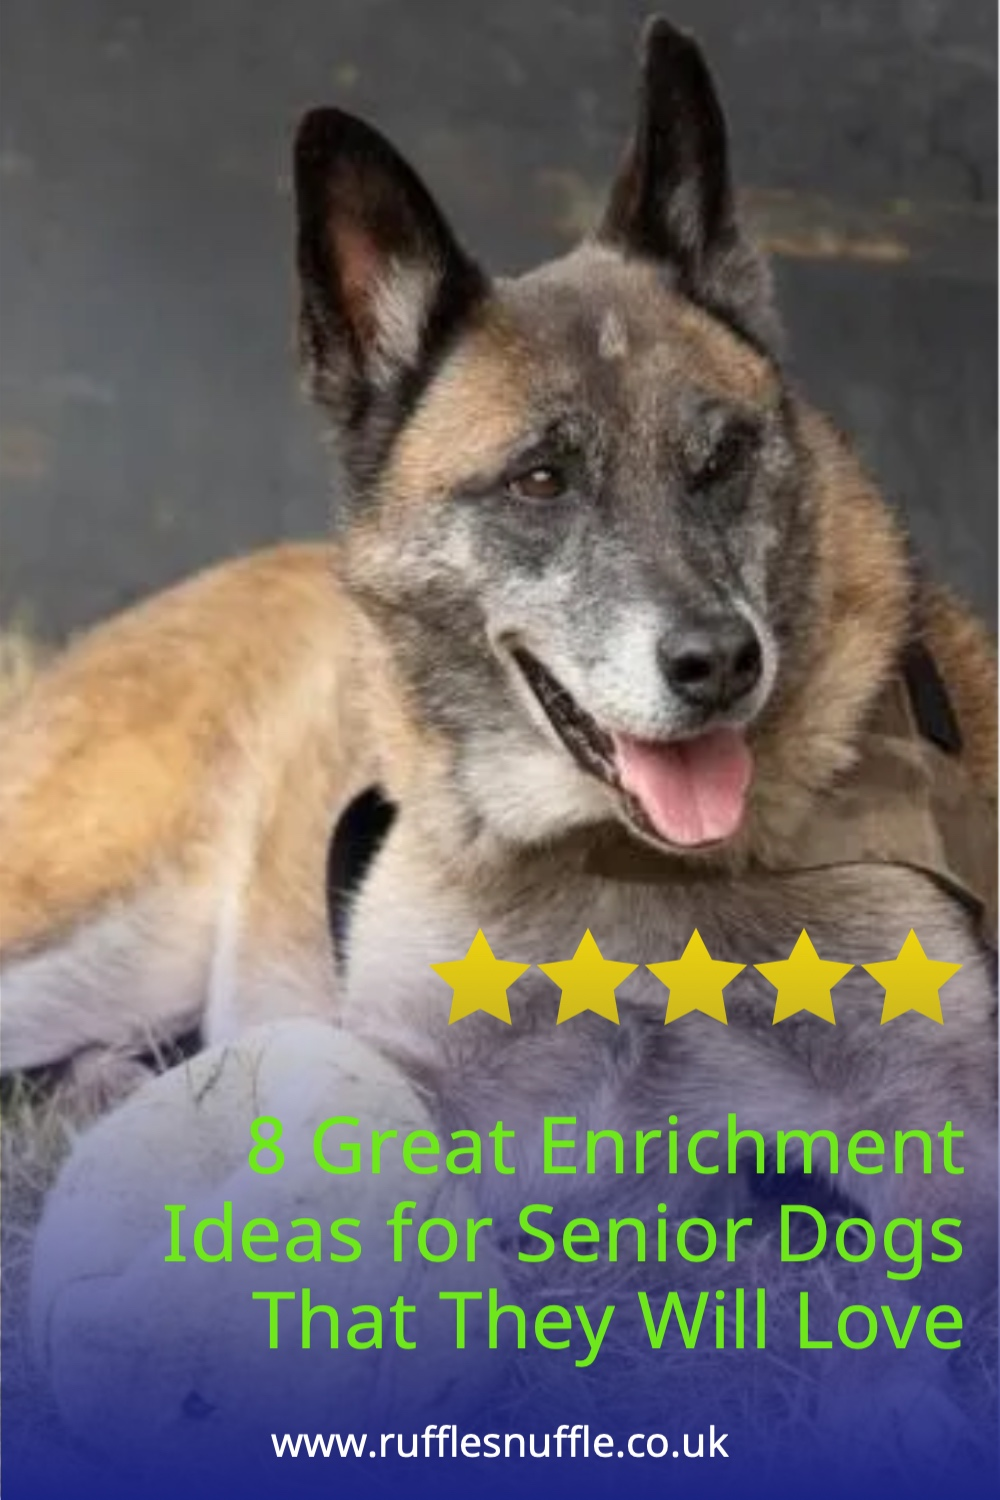 8 Great Enrichment Ideas for Senior Dogs That They Will Love